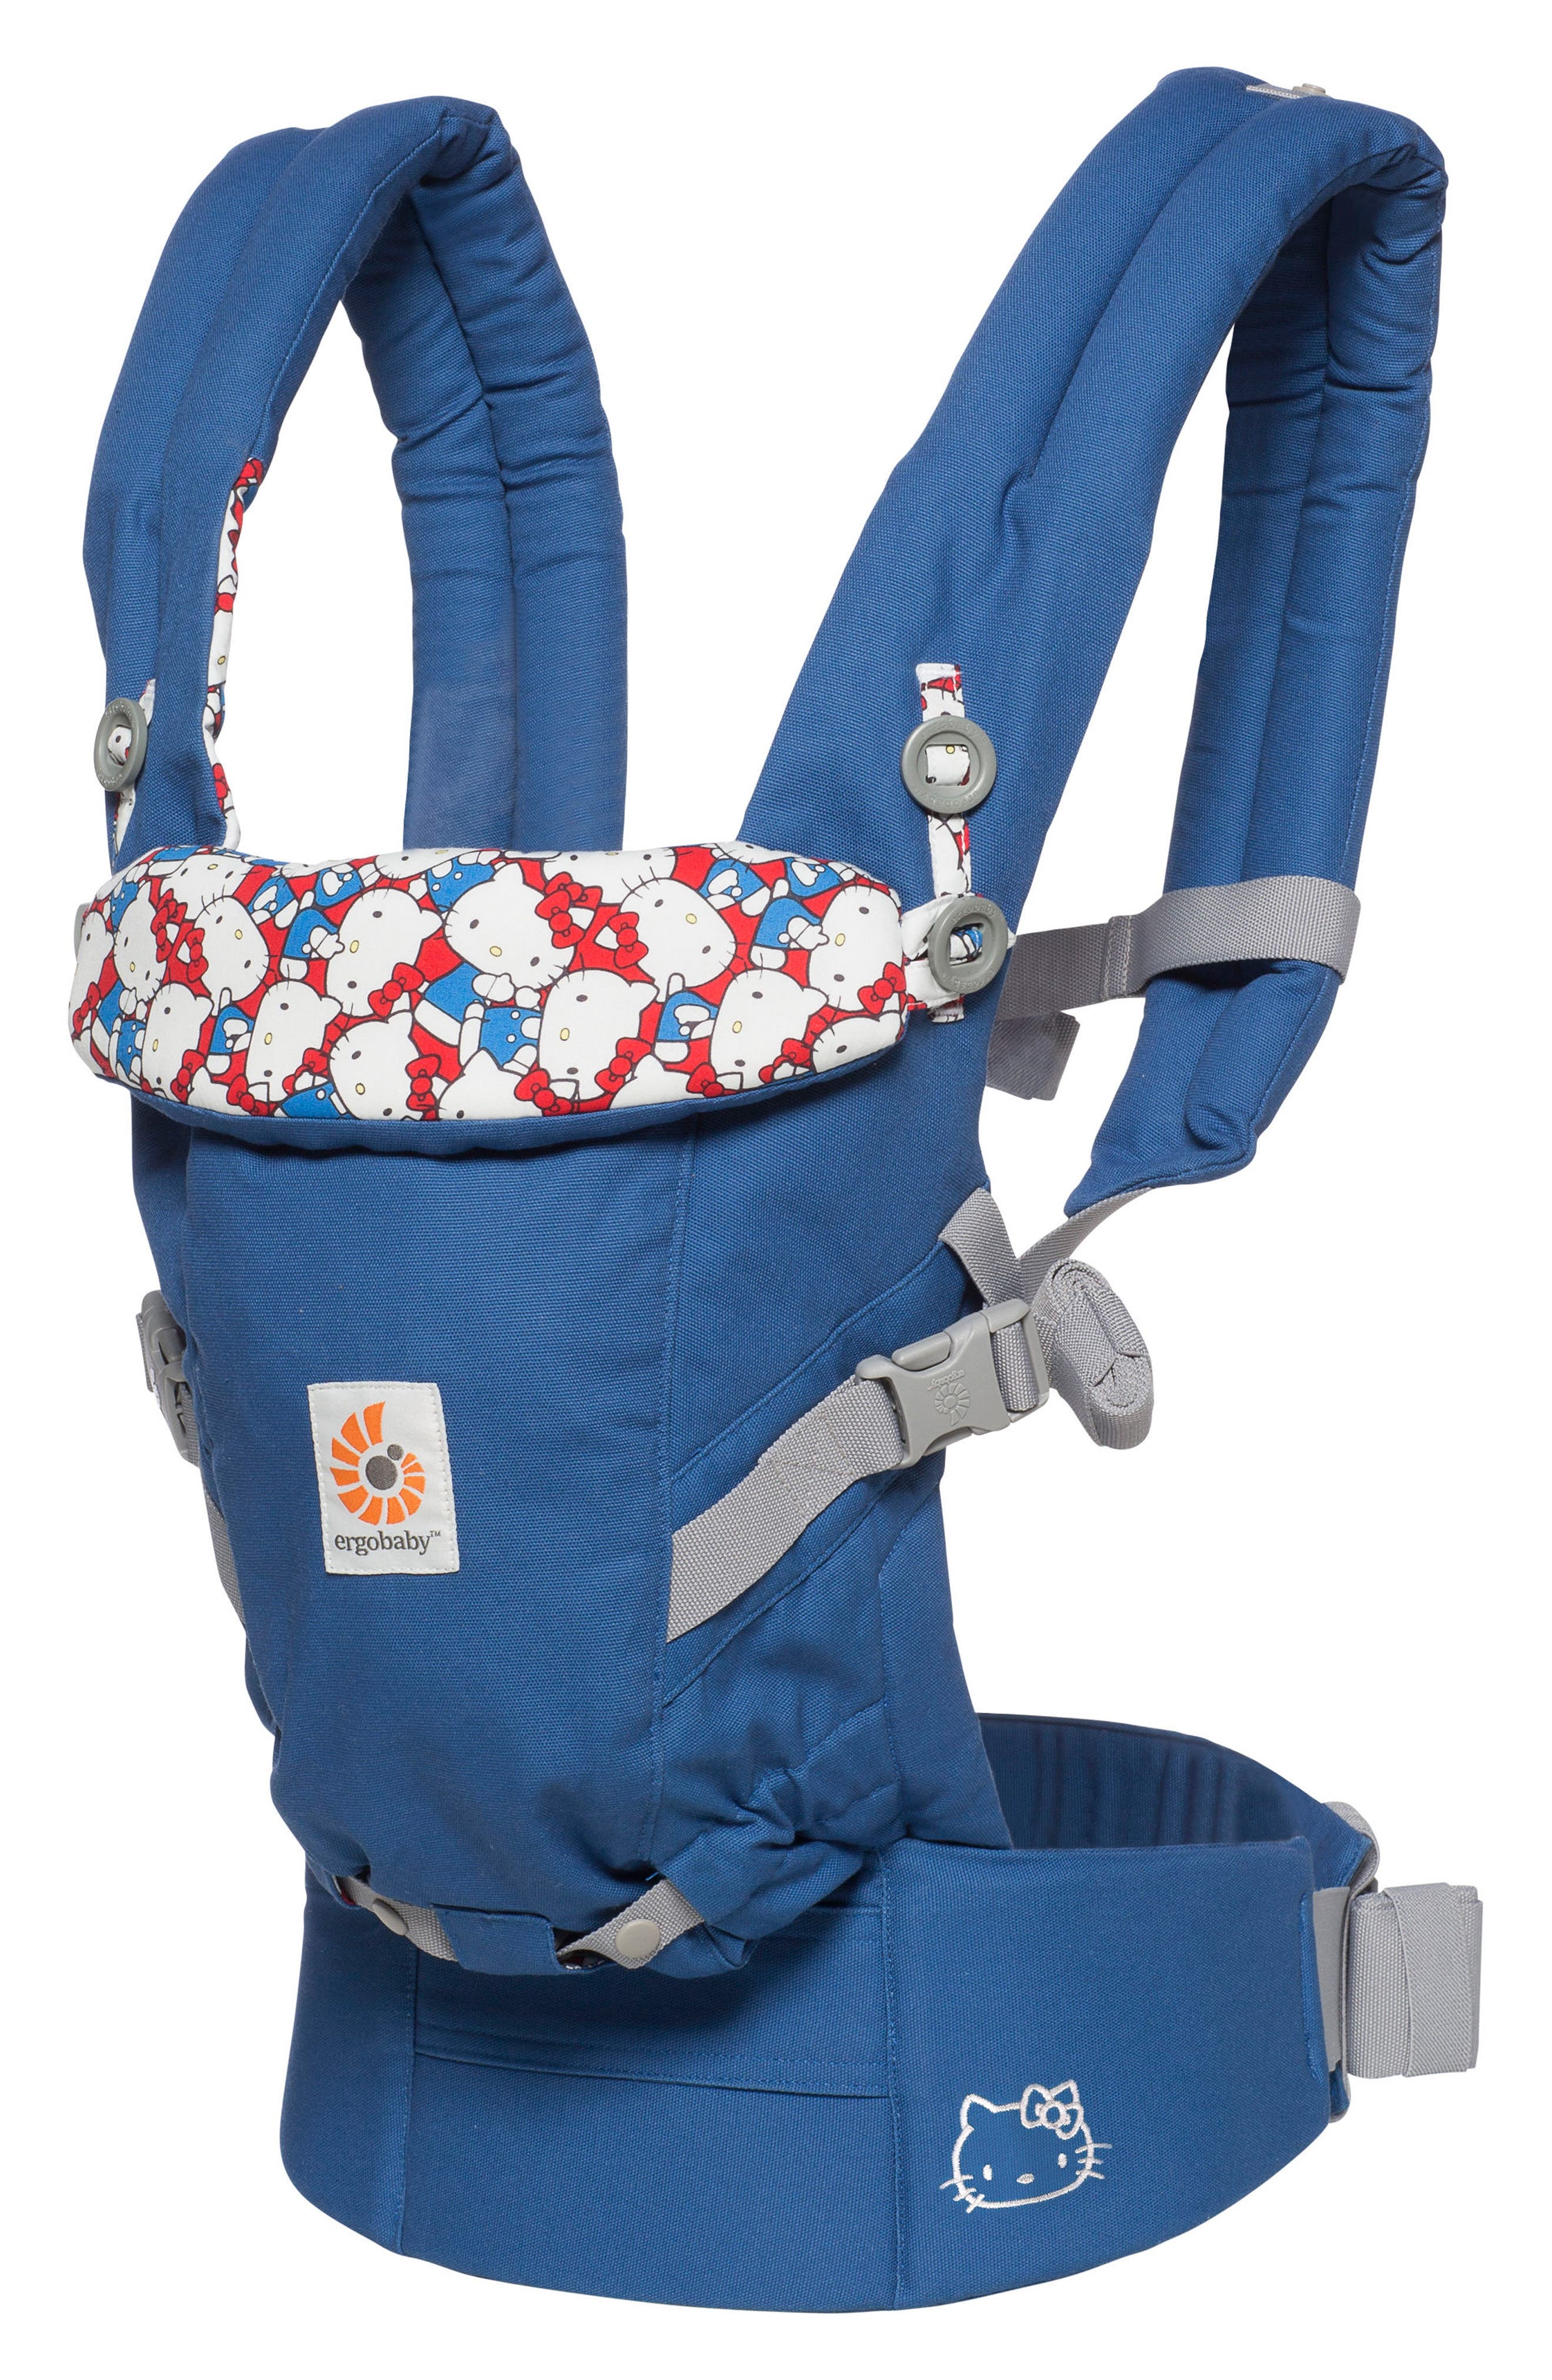 x Hello Kitty<sup>®</sup> Limited Edition Three Position ADAPT Baby Carrier,                         Main,                         color, 400